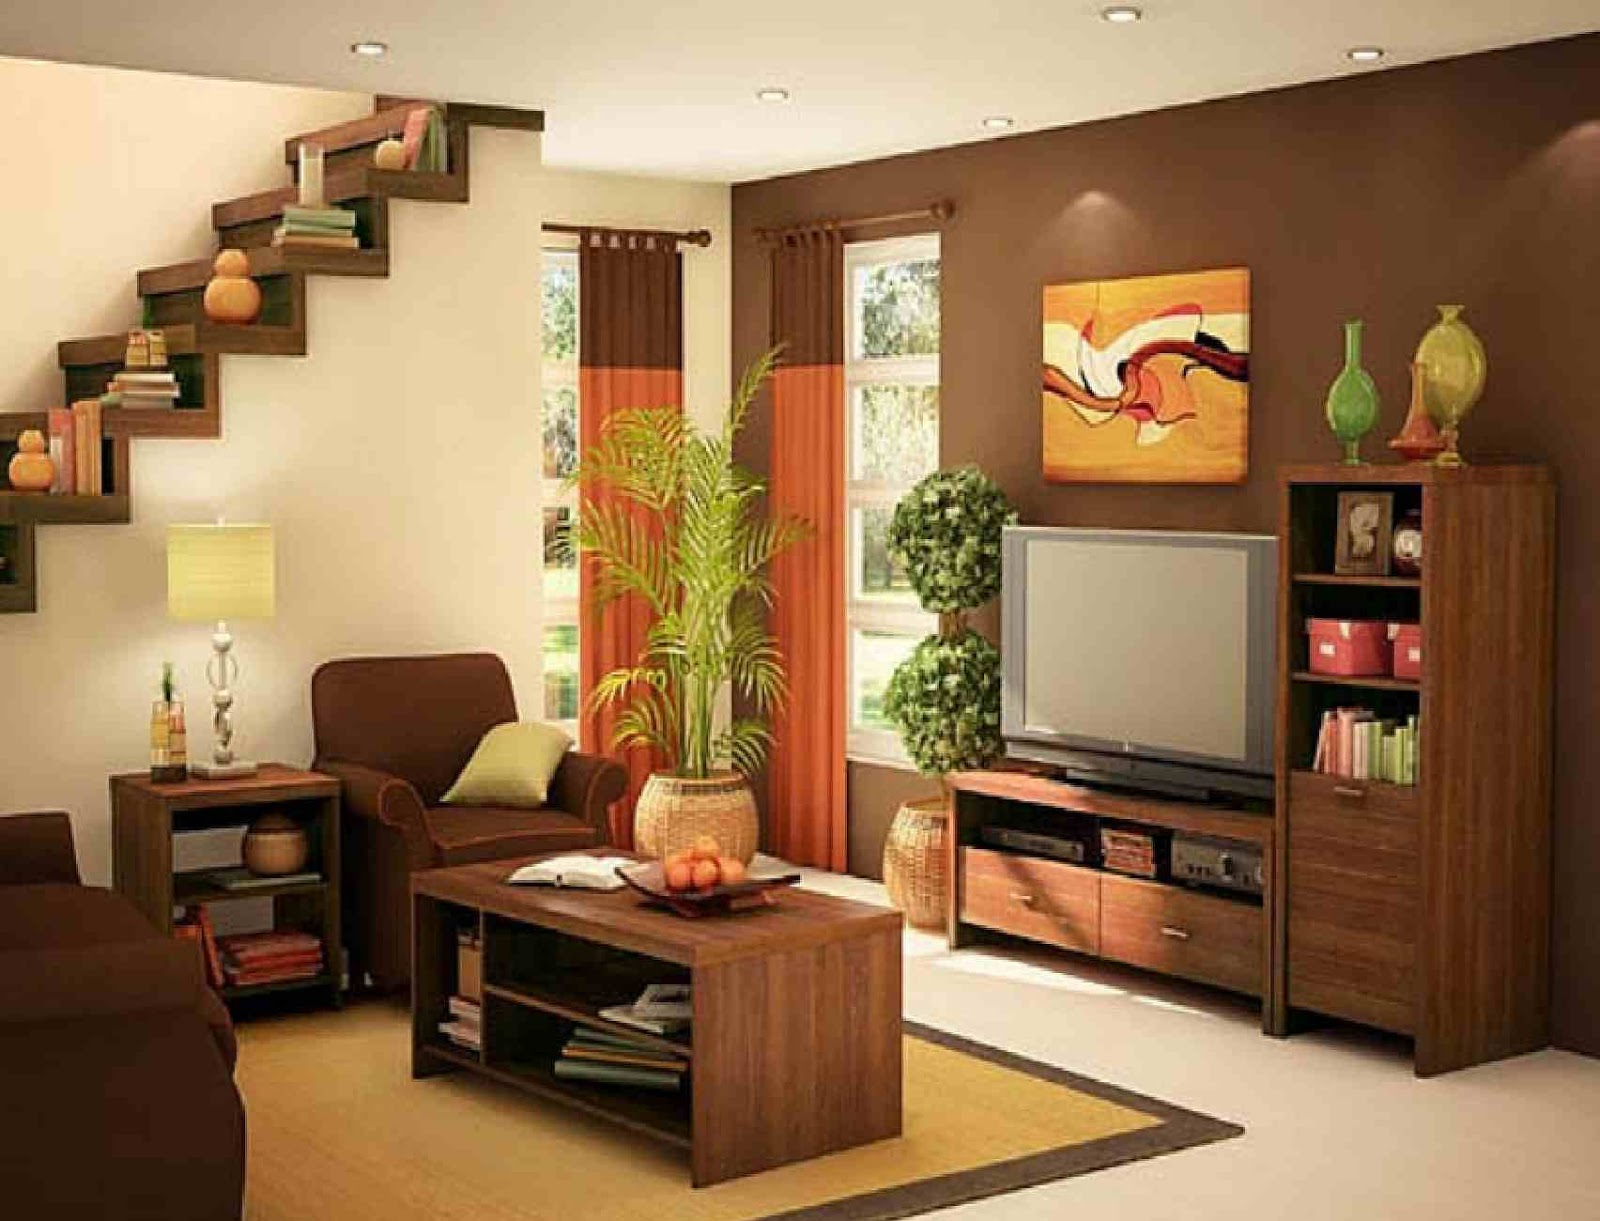 Home interior designs simple living room designs for Home interior design living room